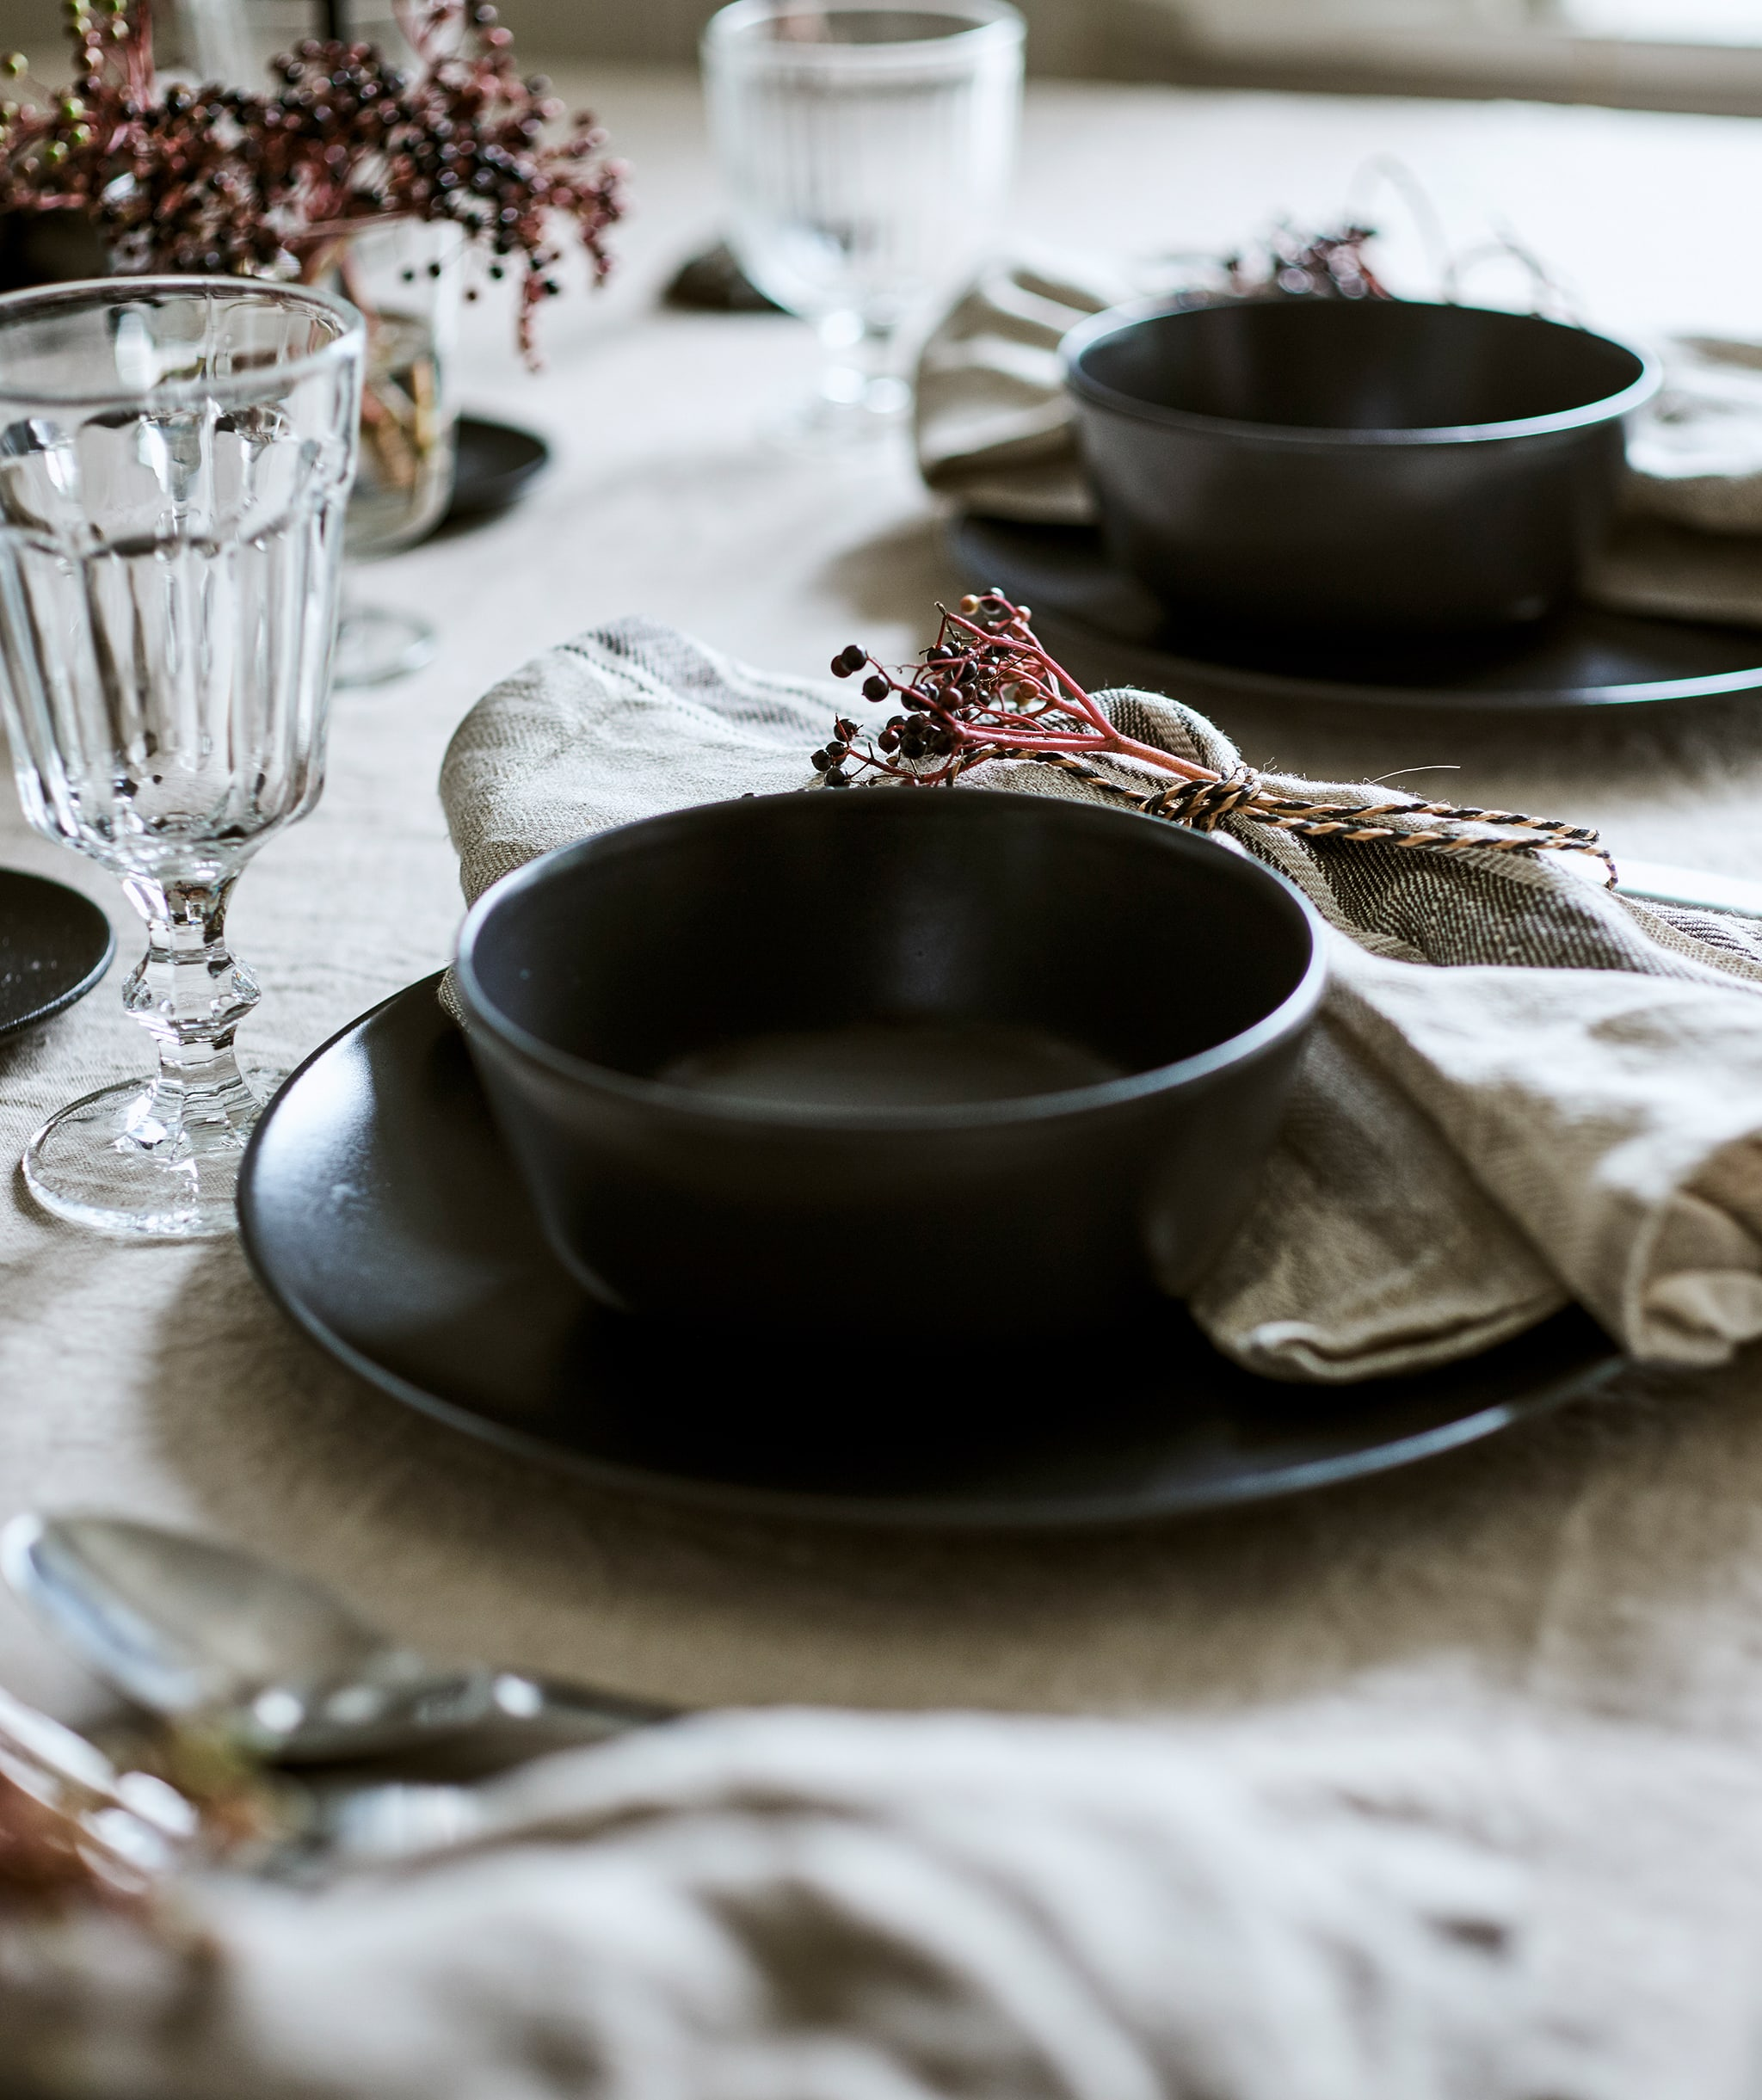 Two place settings on a linen covered table, each has a grey-blue bowl set on a plate with a glass goblet and tied napkin.